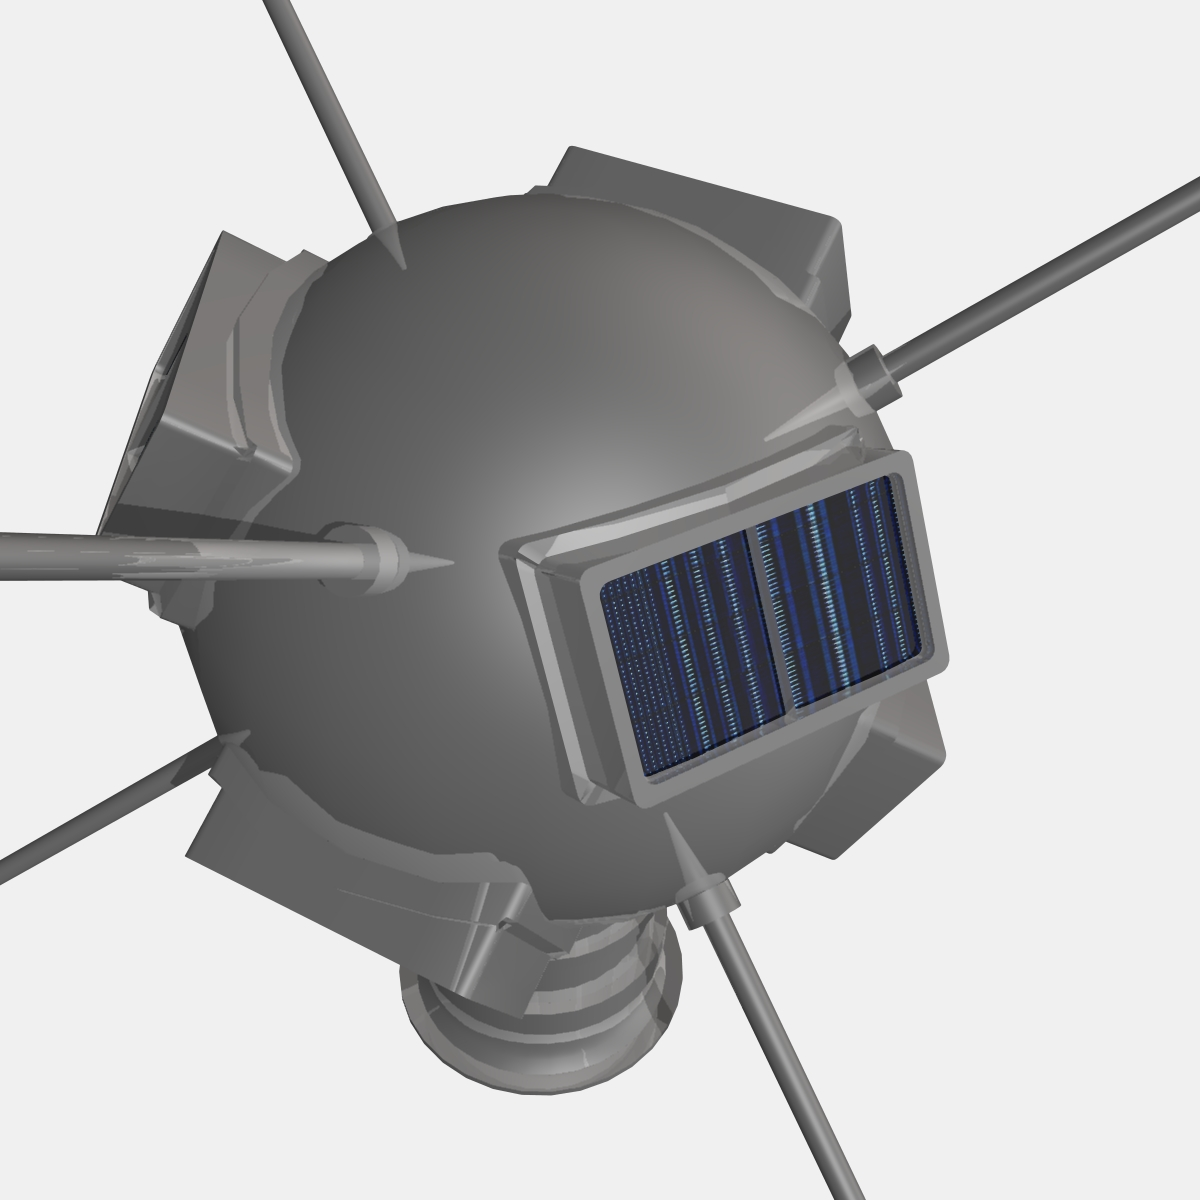 Vanguard I Satellite 3d model 3ds dxf fbx blend cob dae X obj 163930